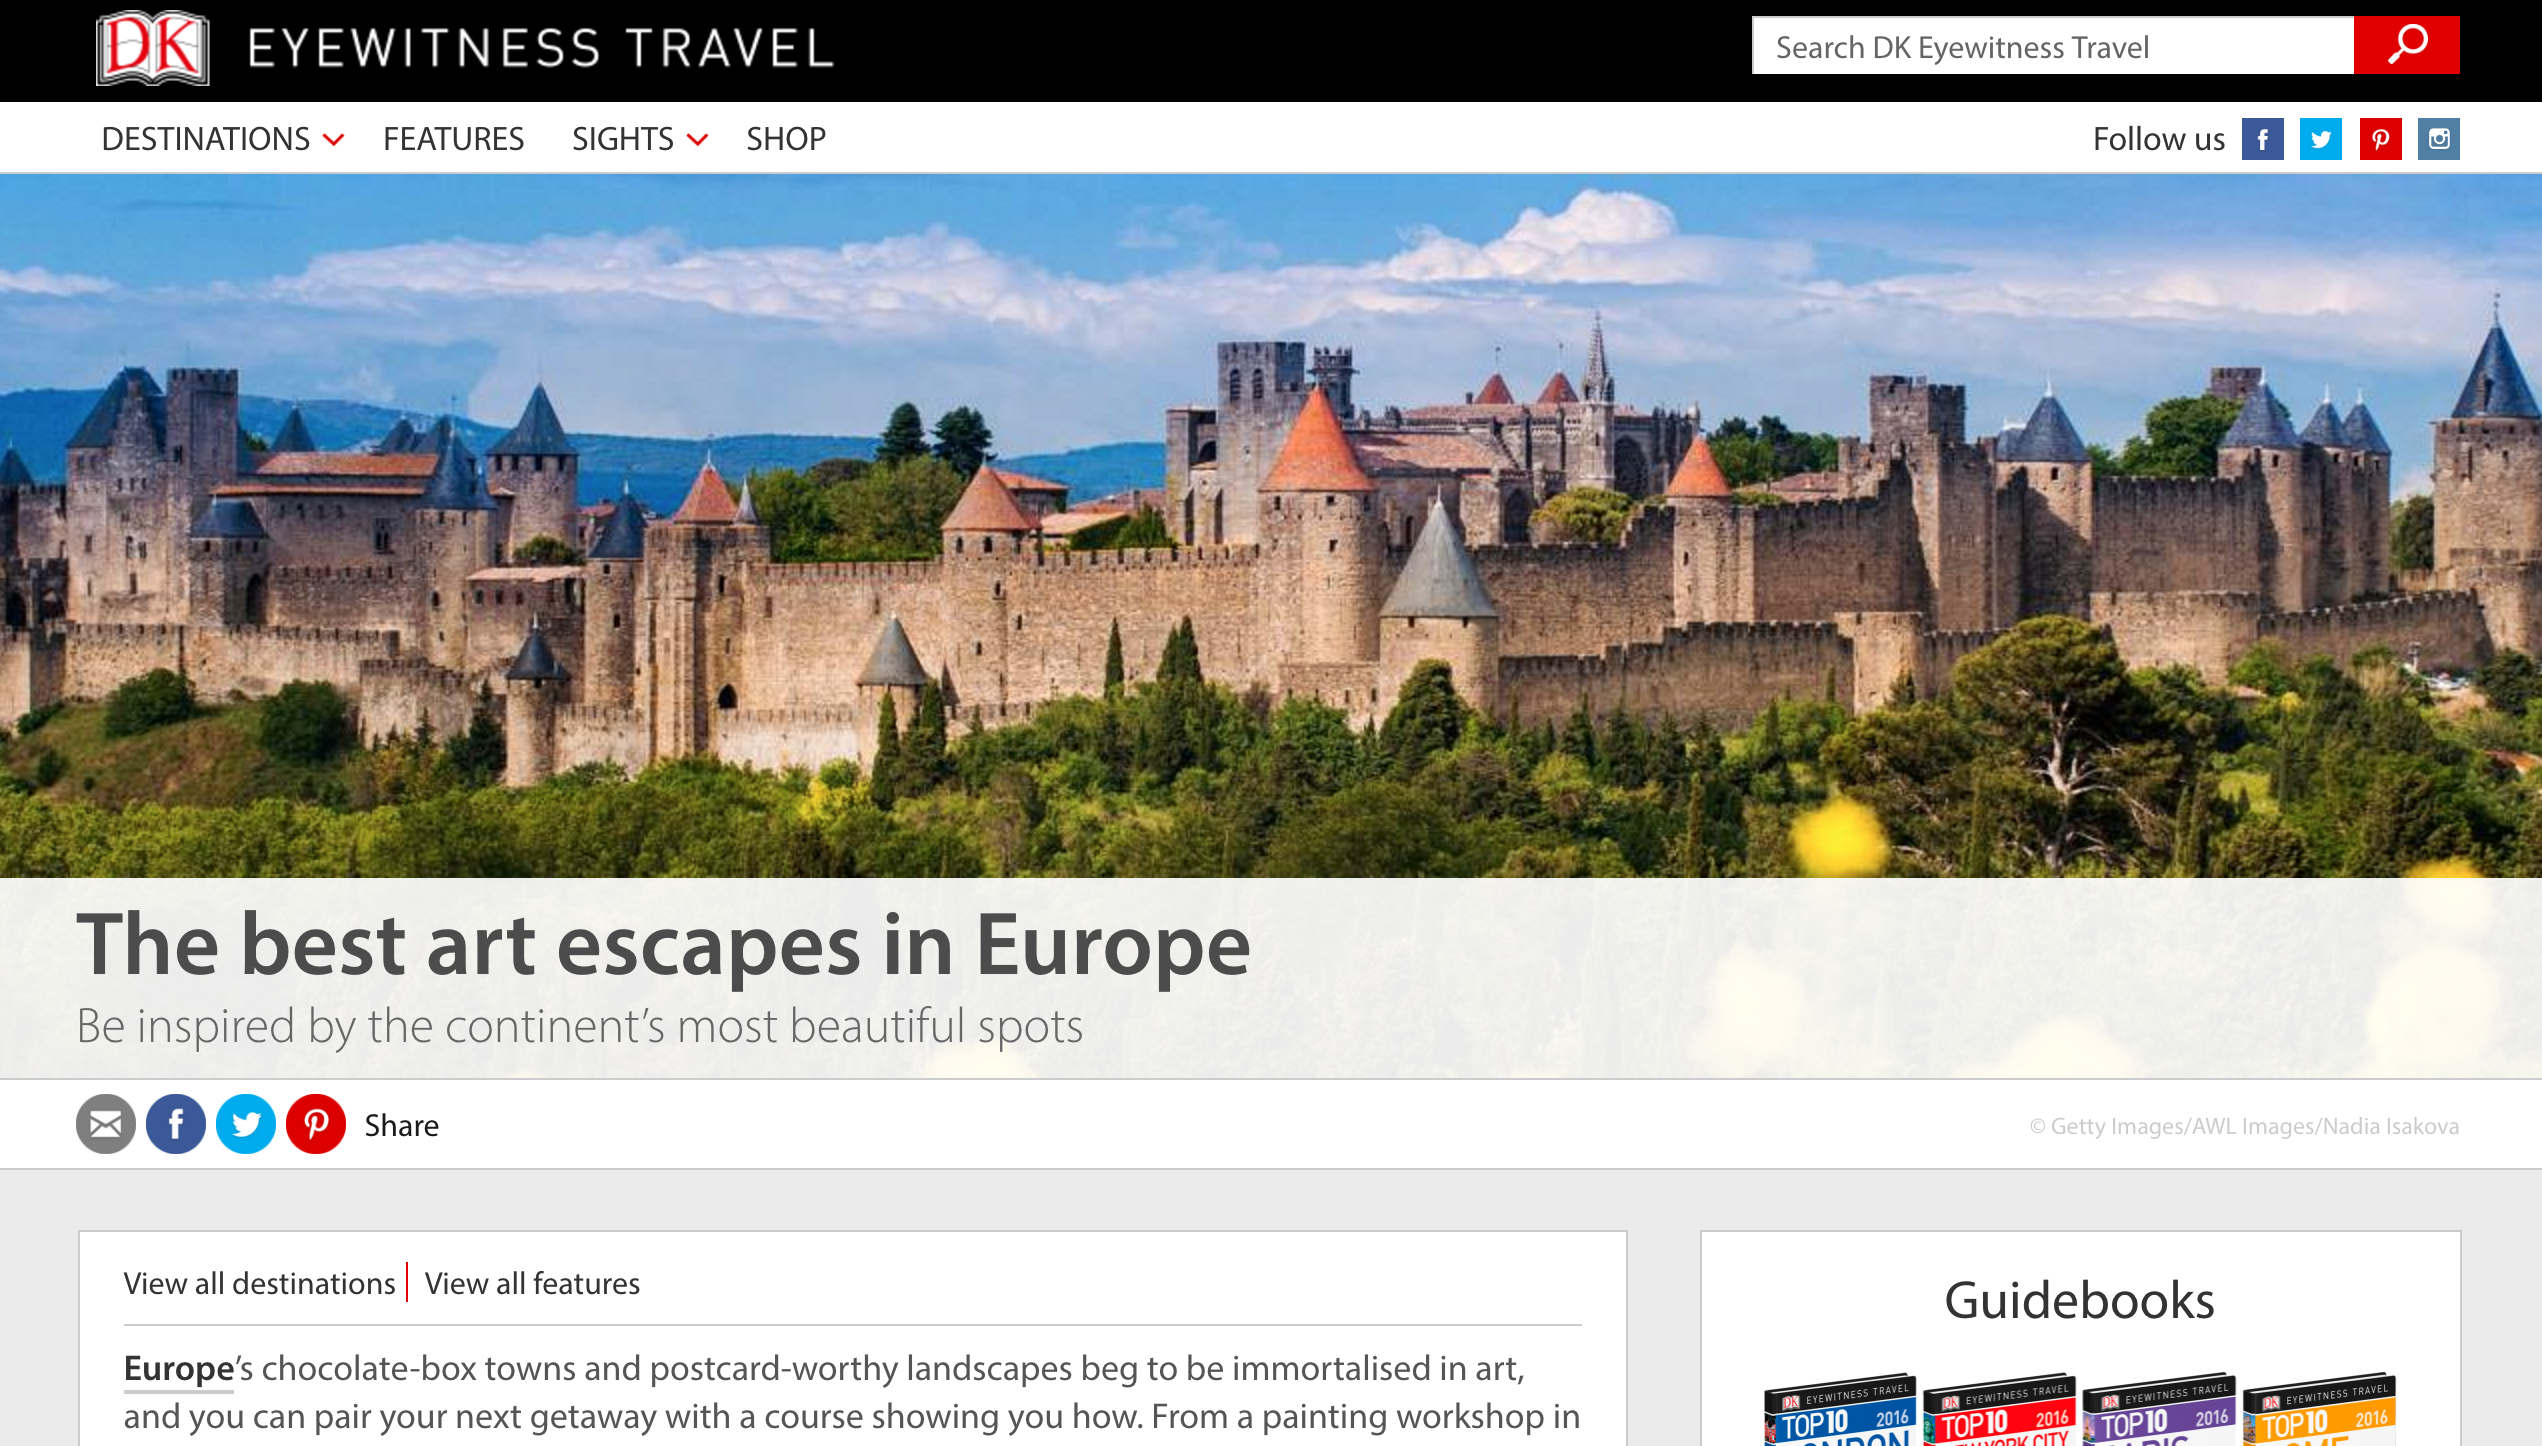 The best art escapes in Europe - DK Travel